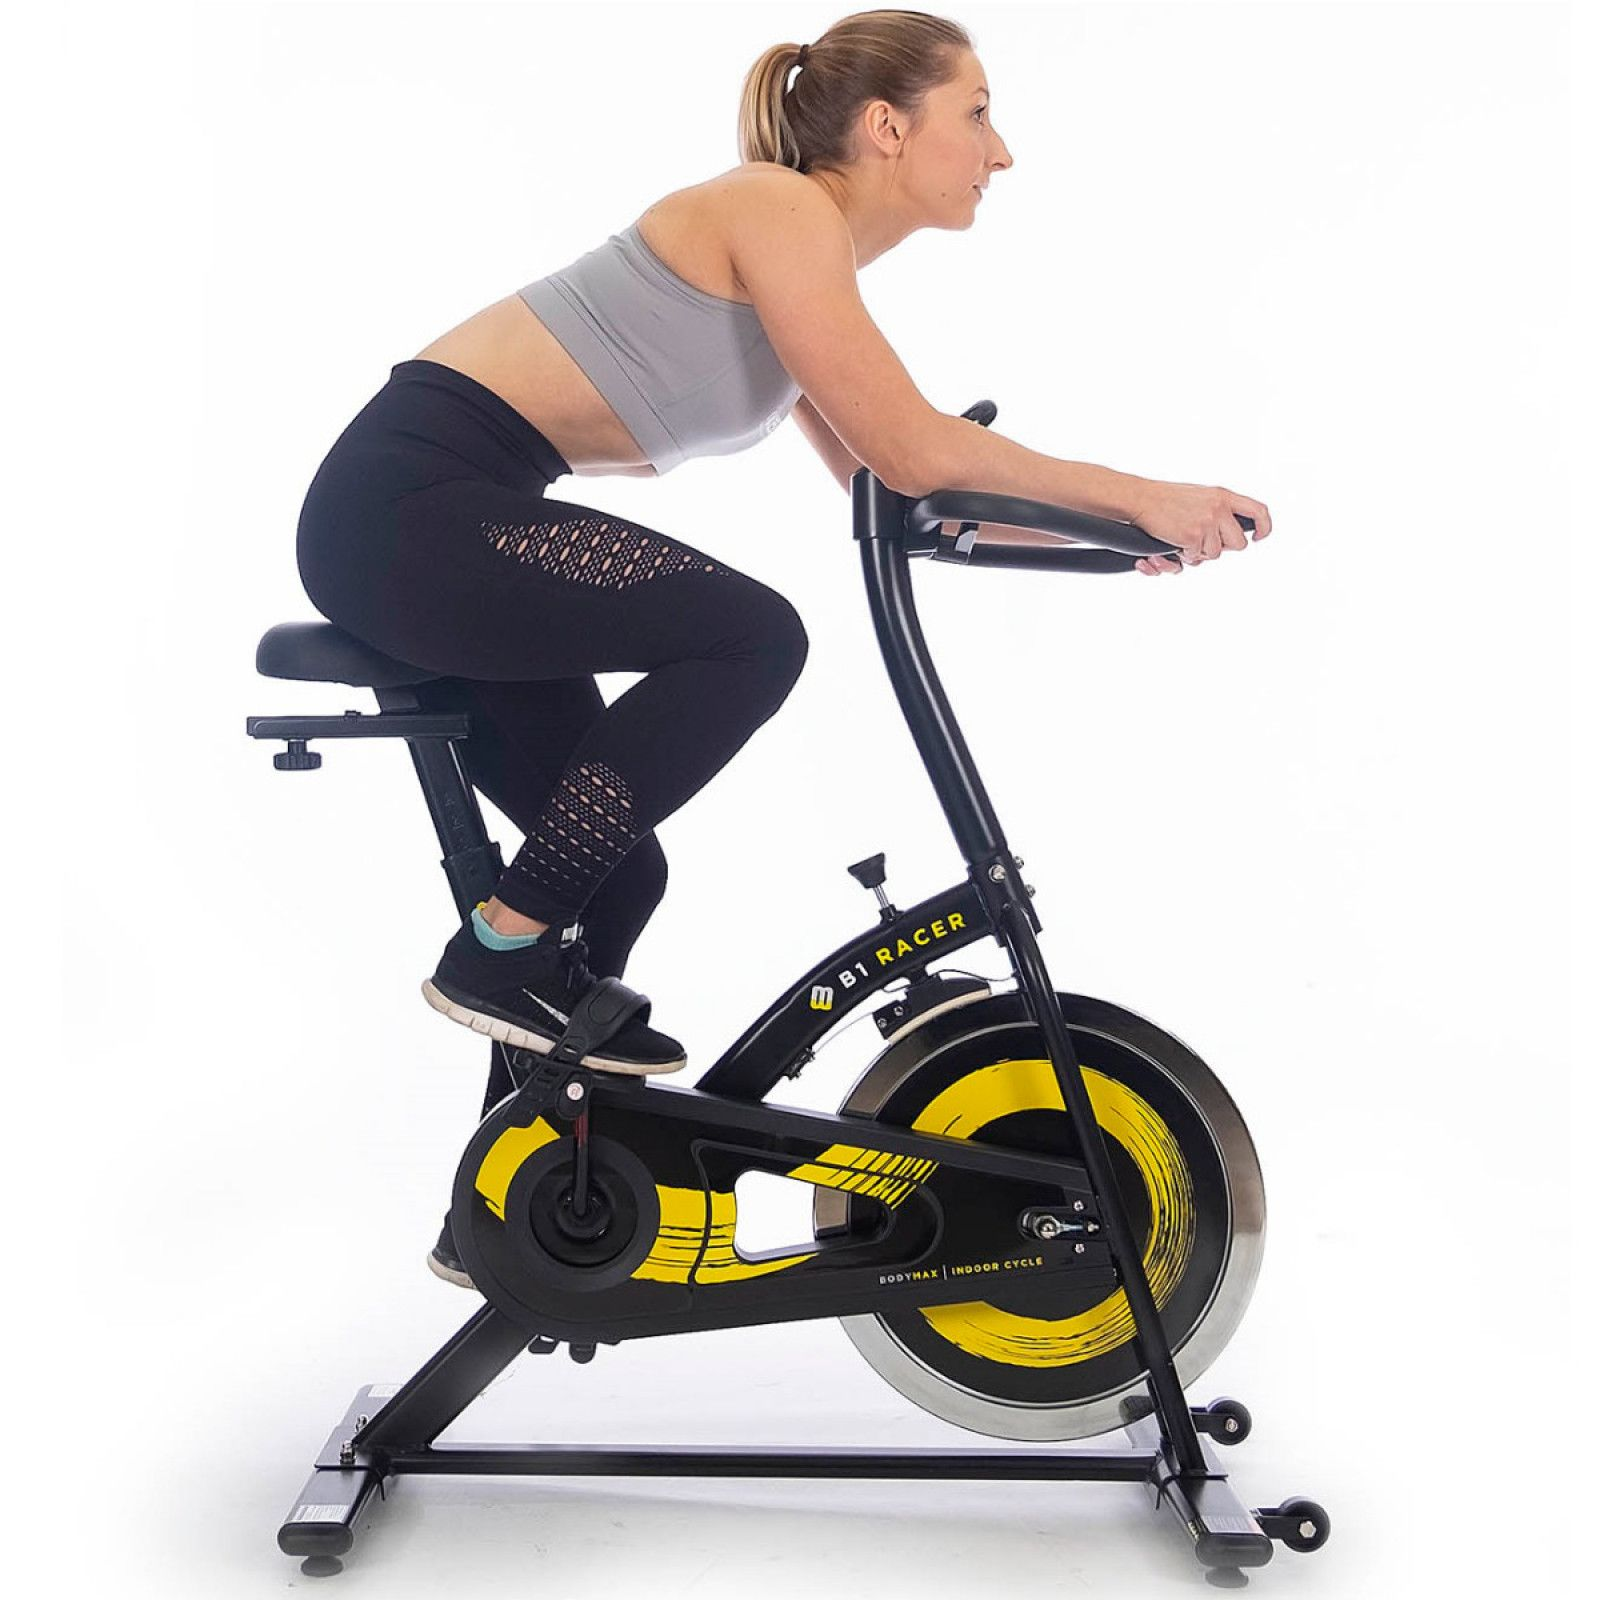 Bodymax B1 Racer Indoor Cycle Exercise Bike Biking Workout